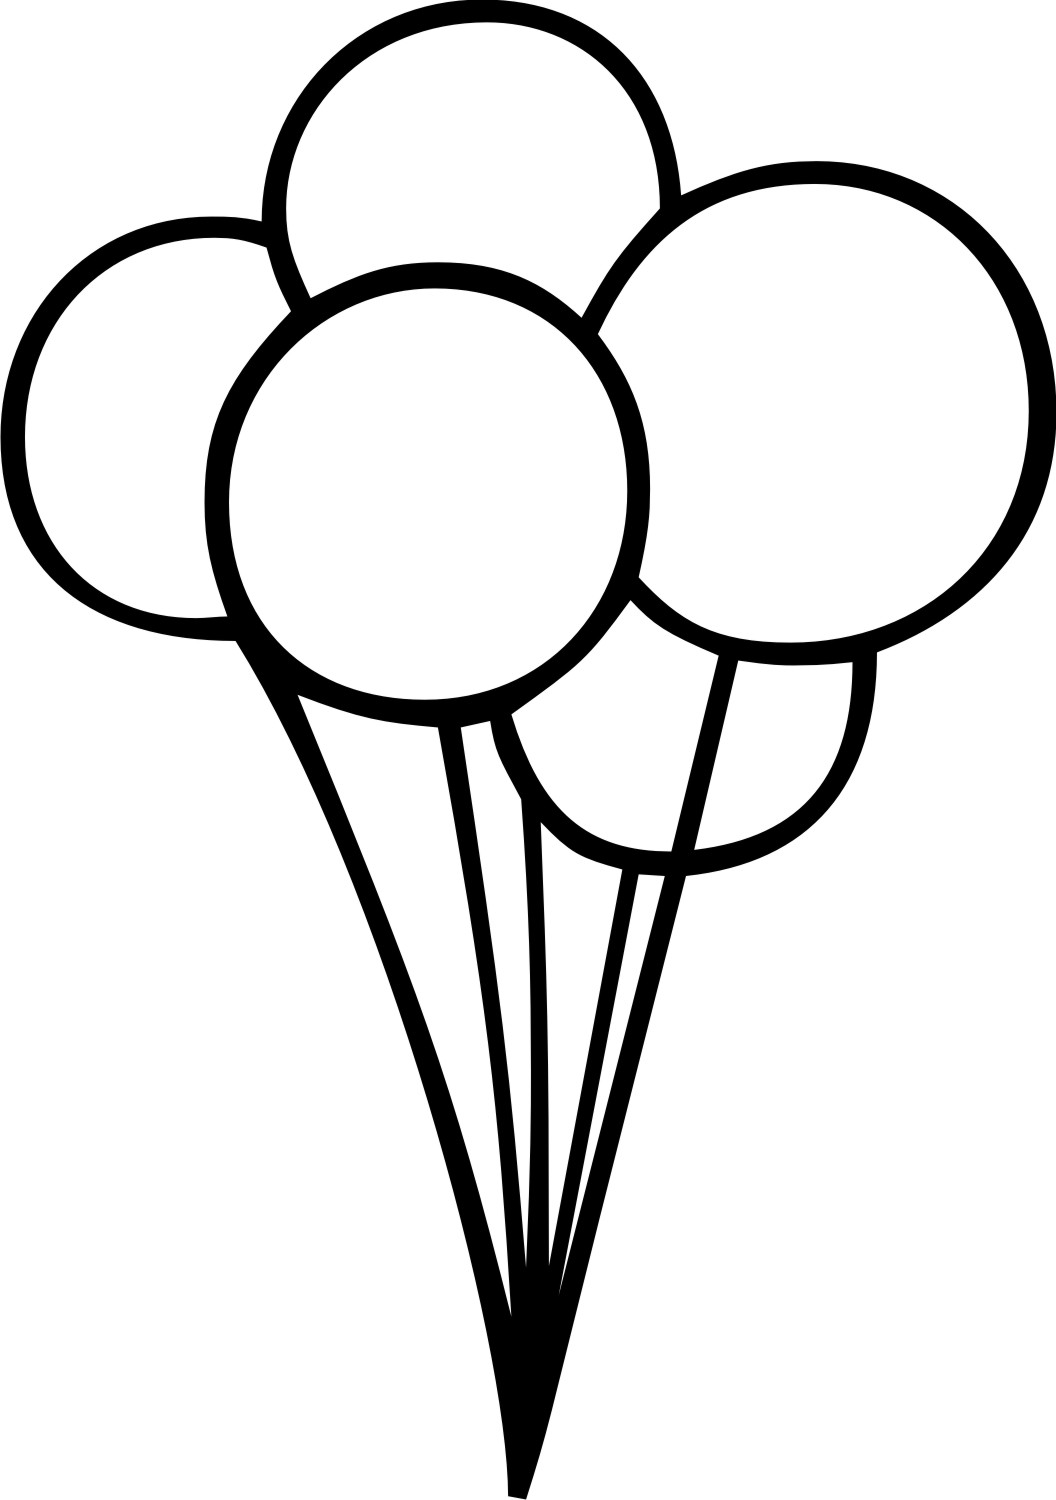 Balloon Designs Pictures Balloon Clipart